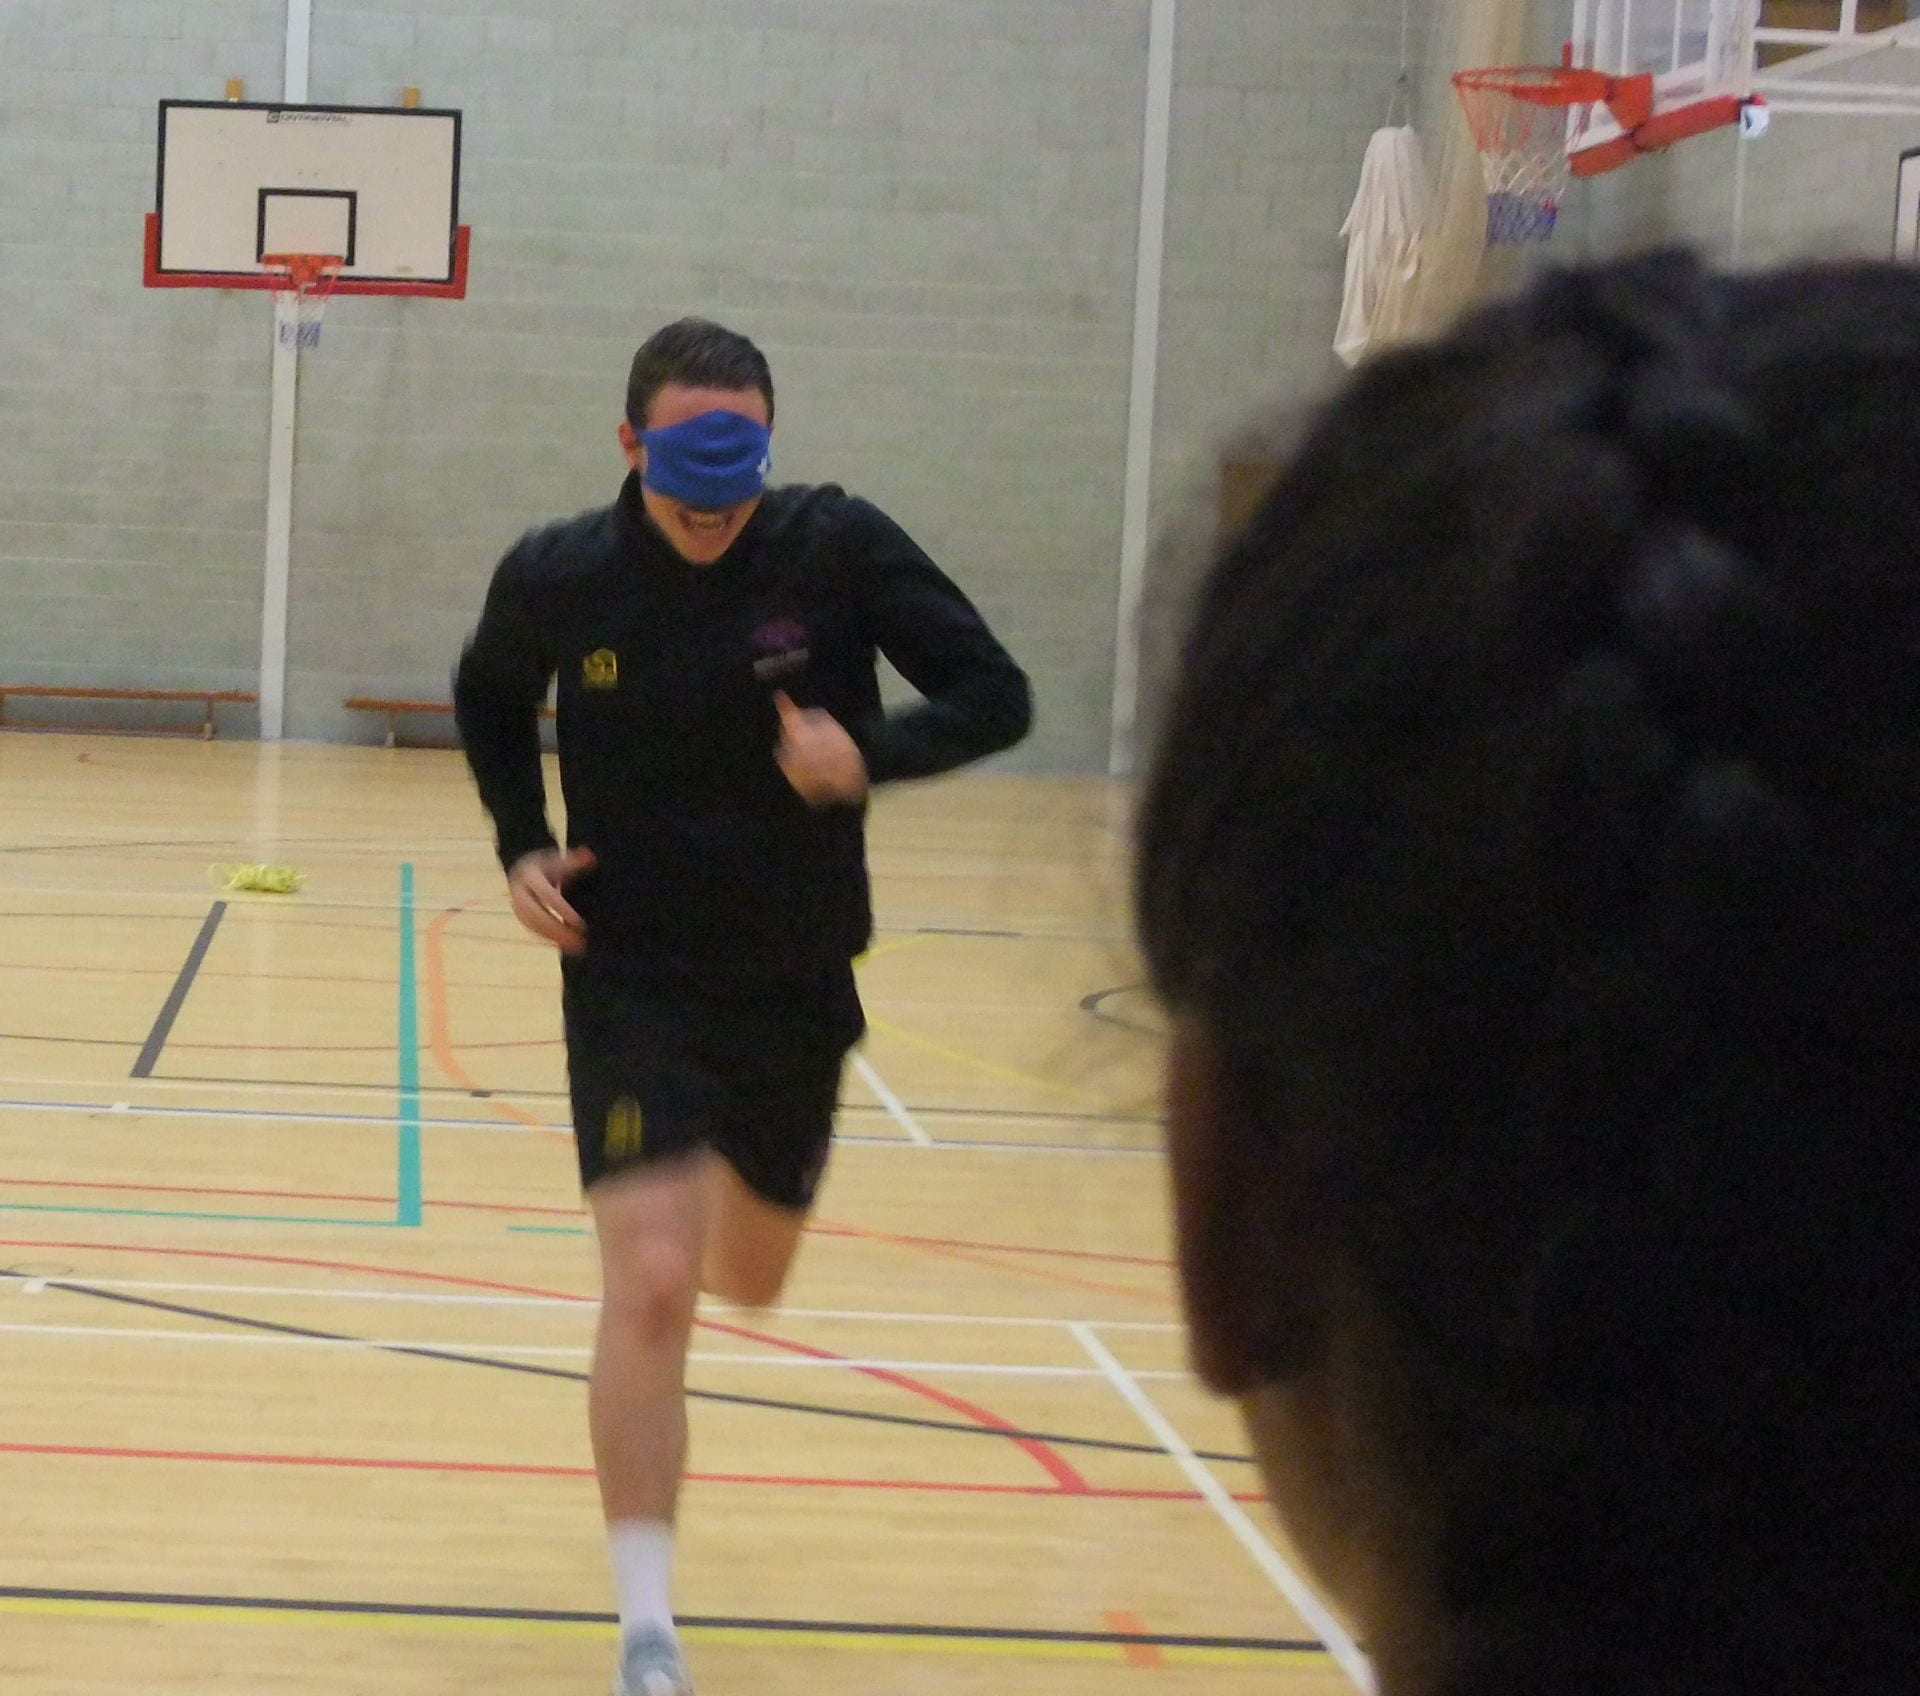 students in the gym during the session